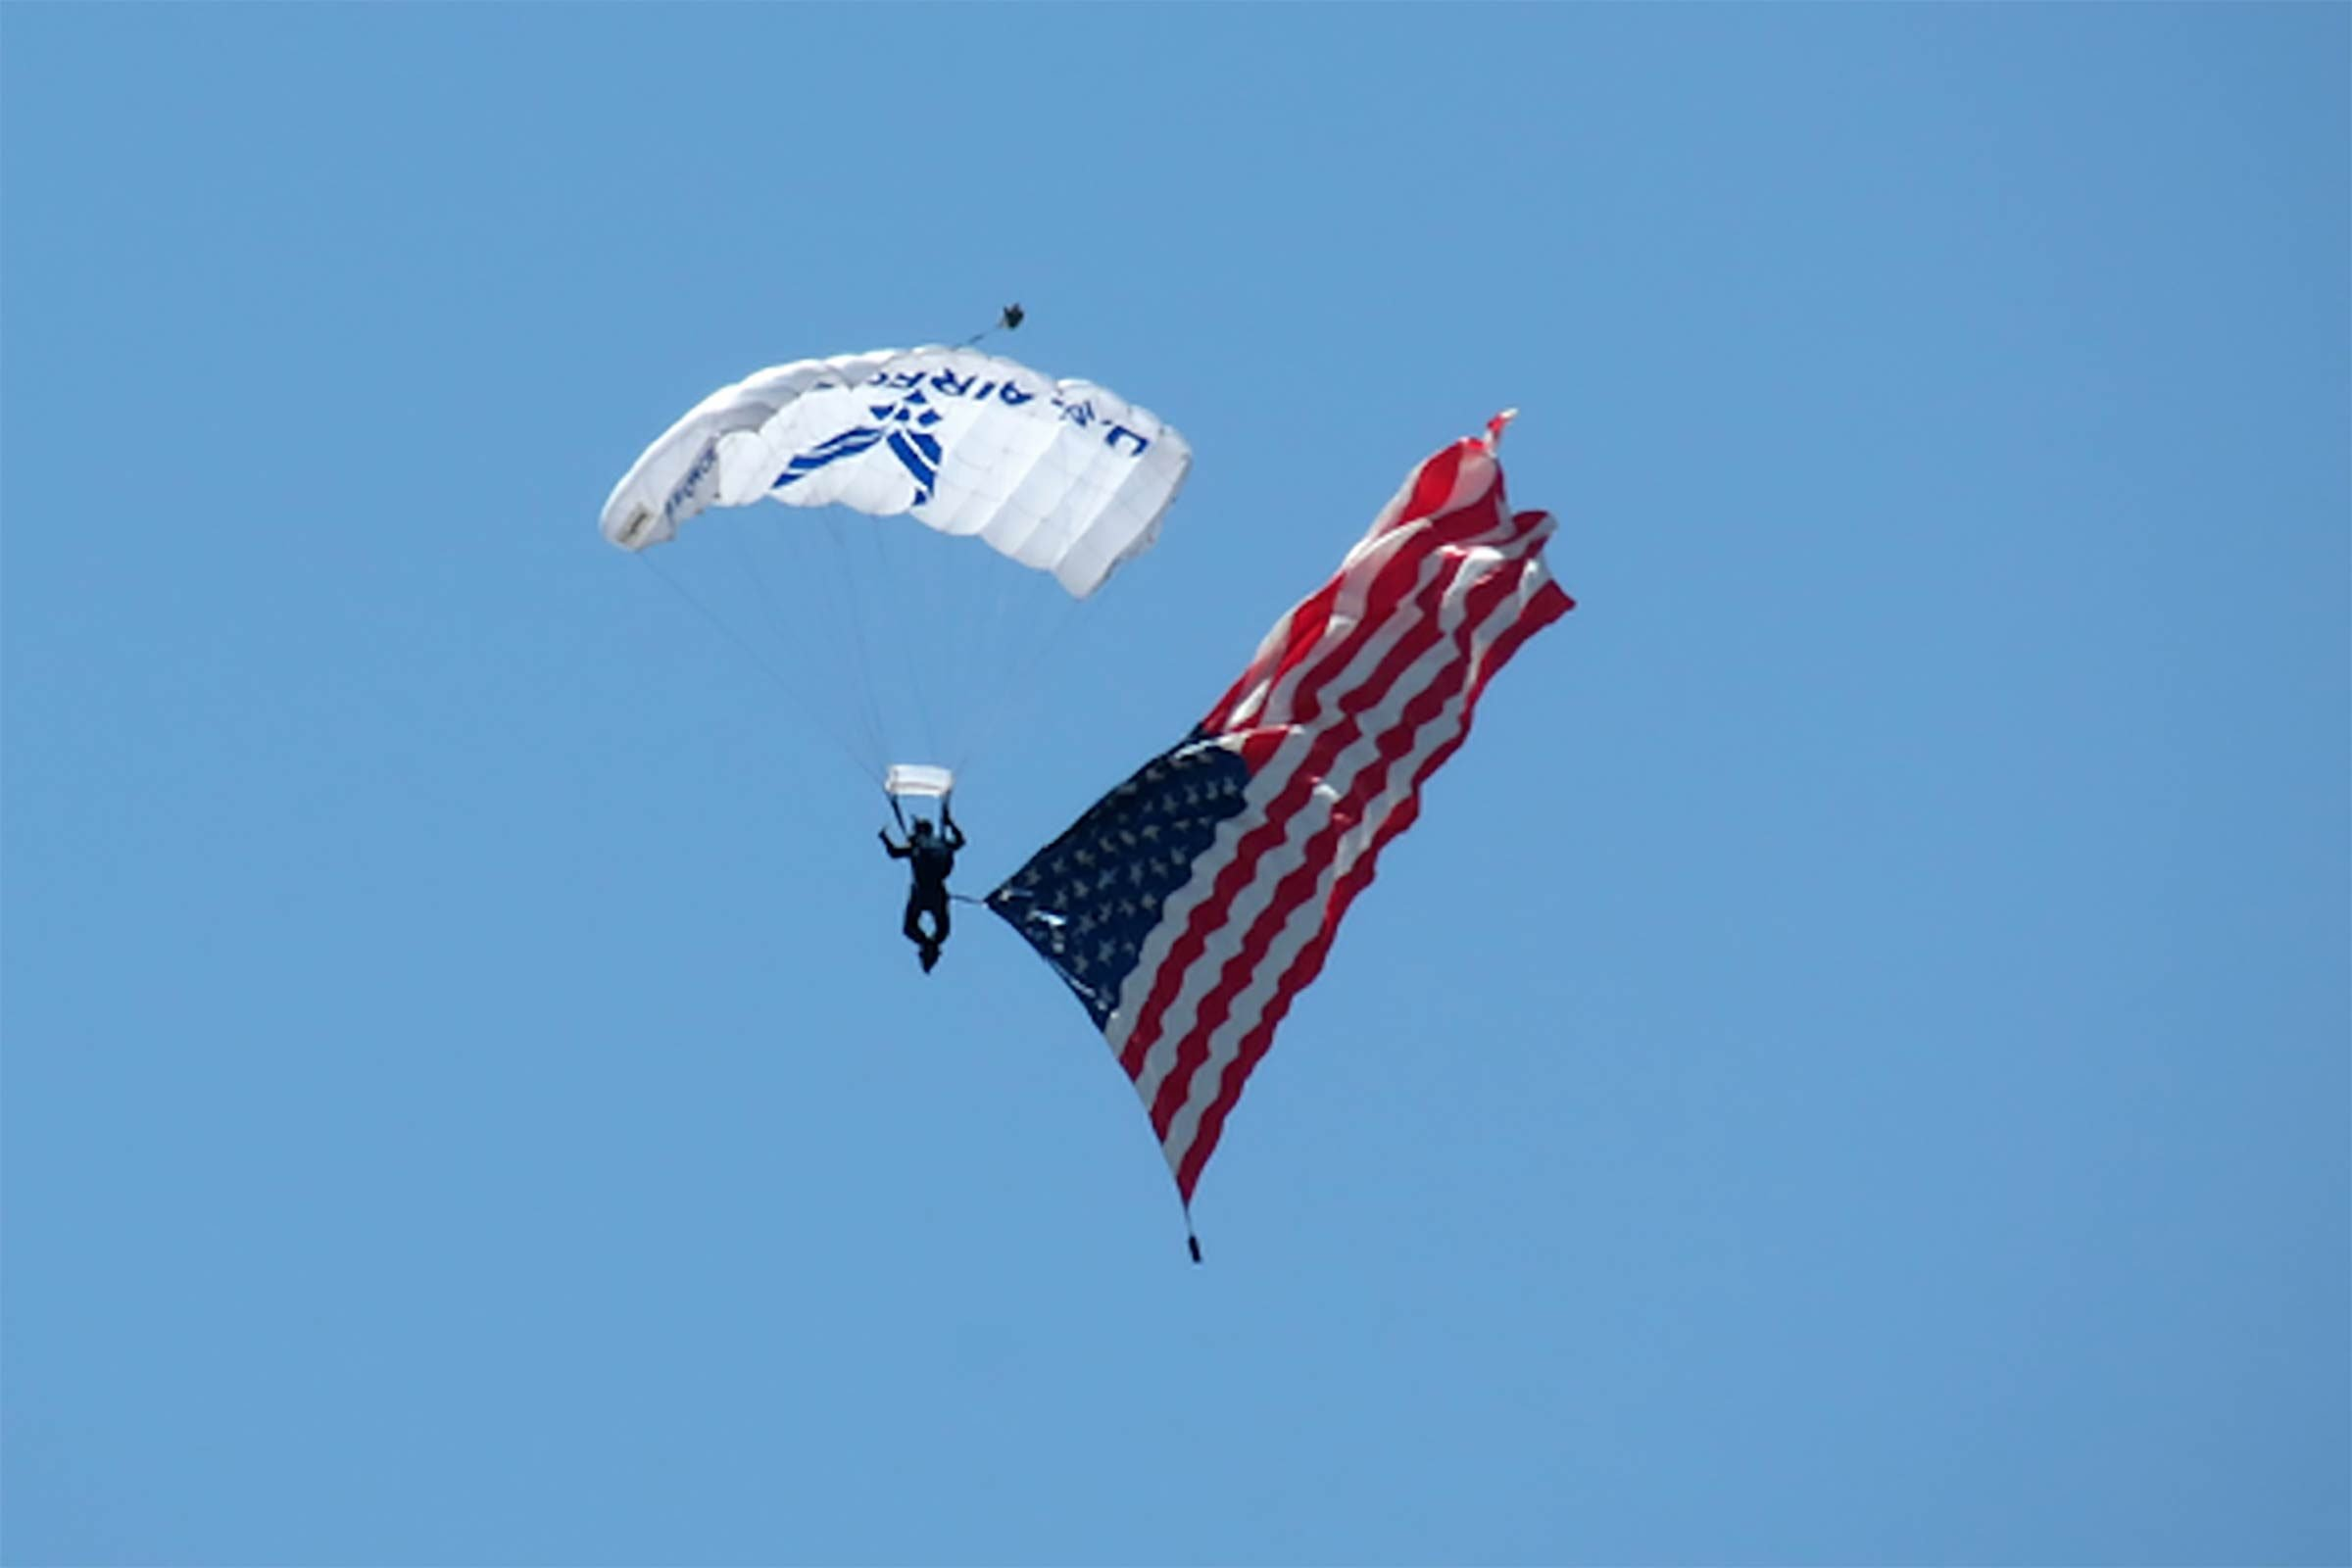 a member of the U.S. Air Force Academy Wings of Blue precision parachute team floats through the clear blue skies above Davis-Monthan Air Force Base in Tuscan, Arizona with an american flag